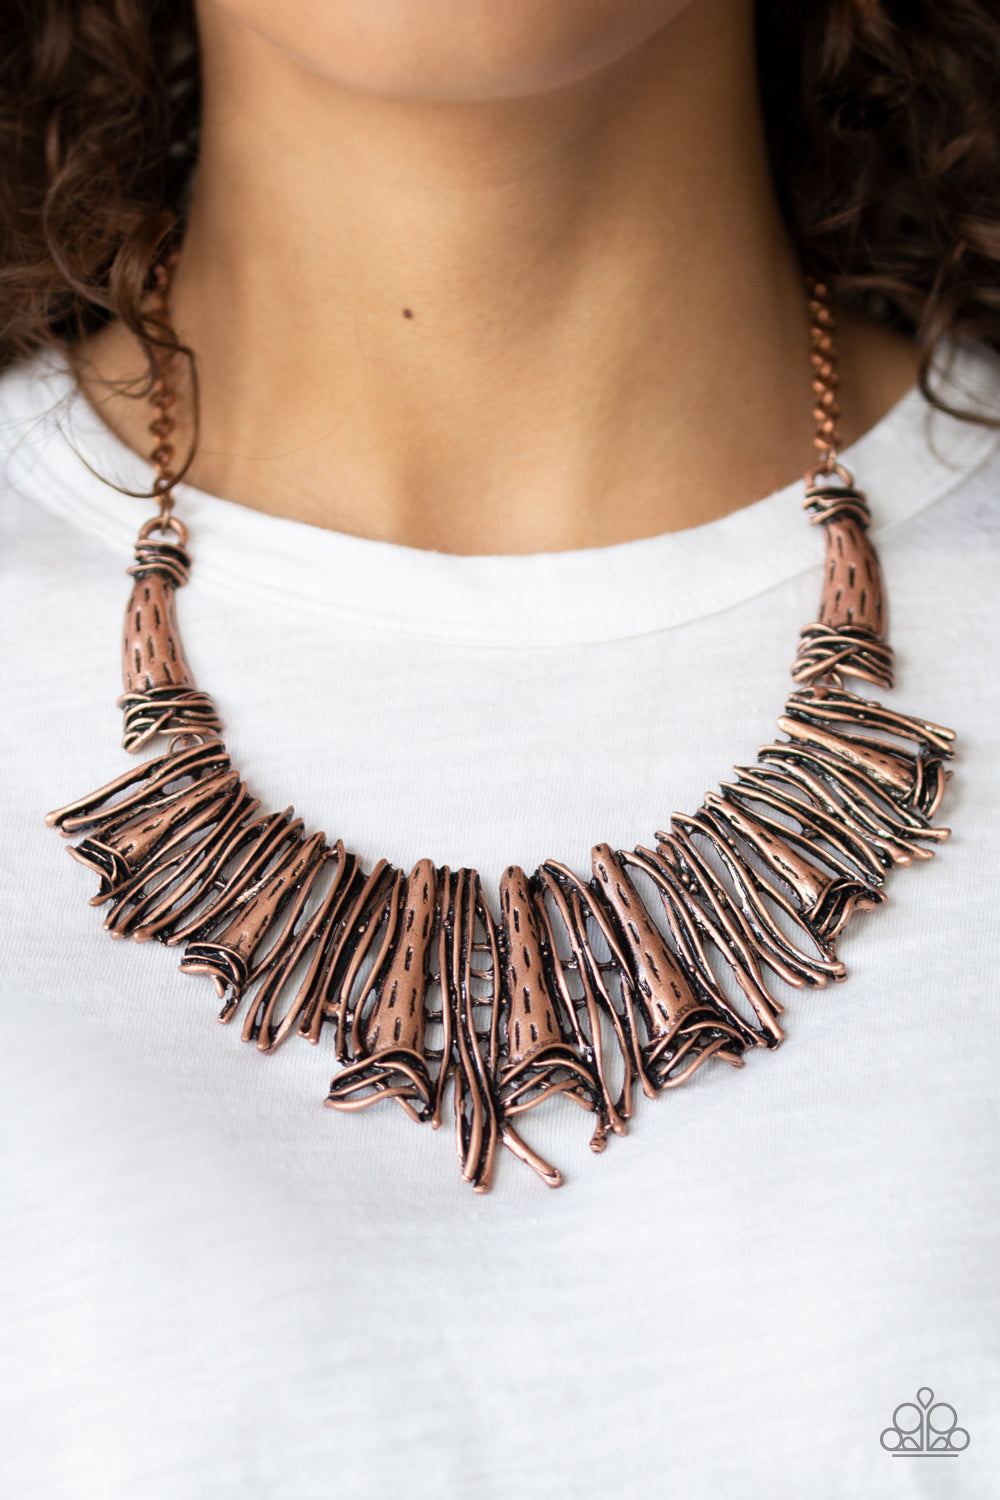 Paparazzi Accessories In The MANE-stream - Copper Necklaces